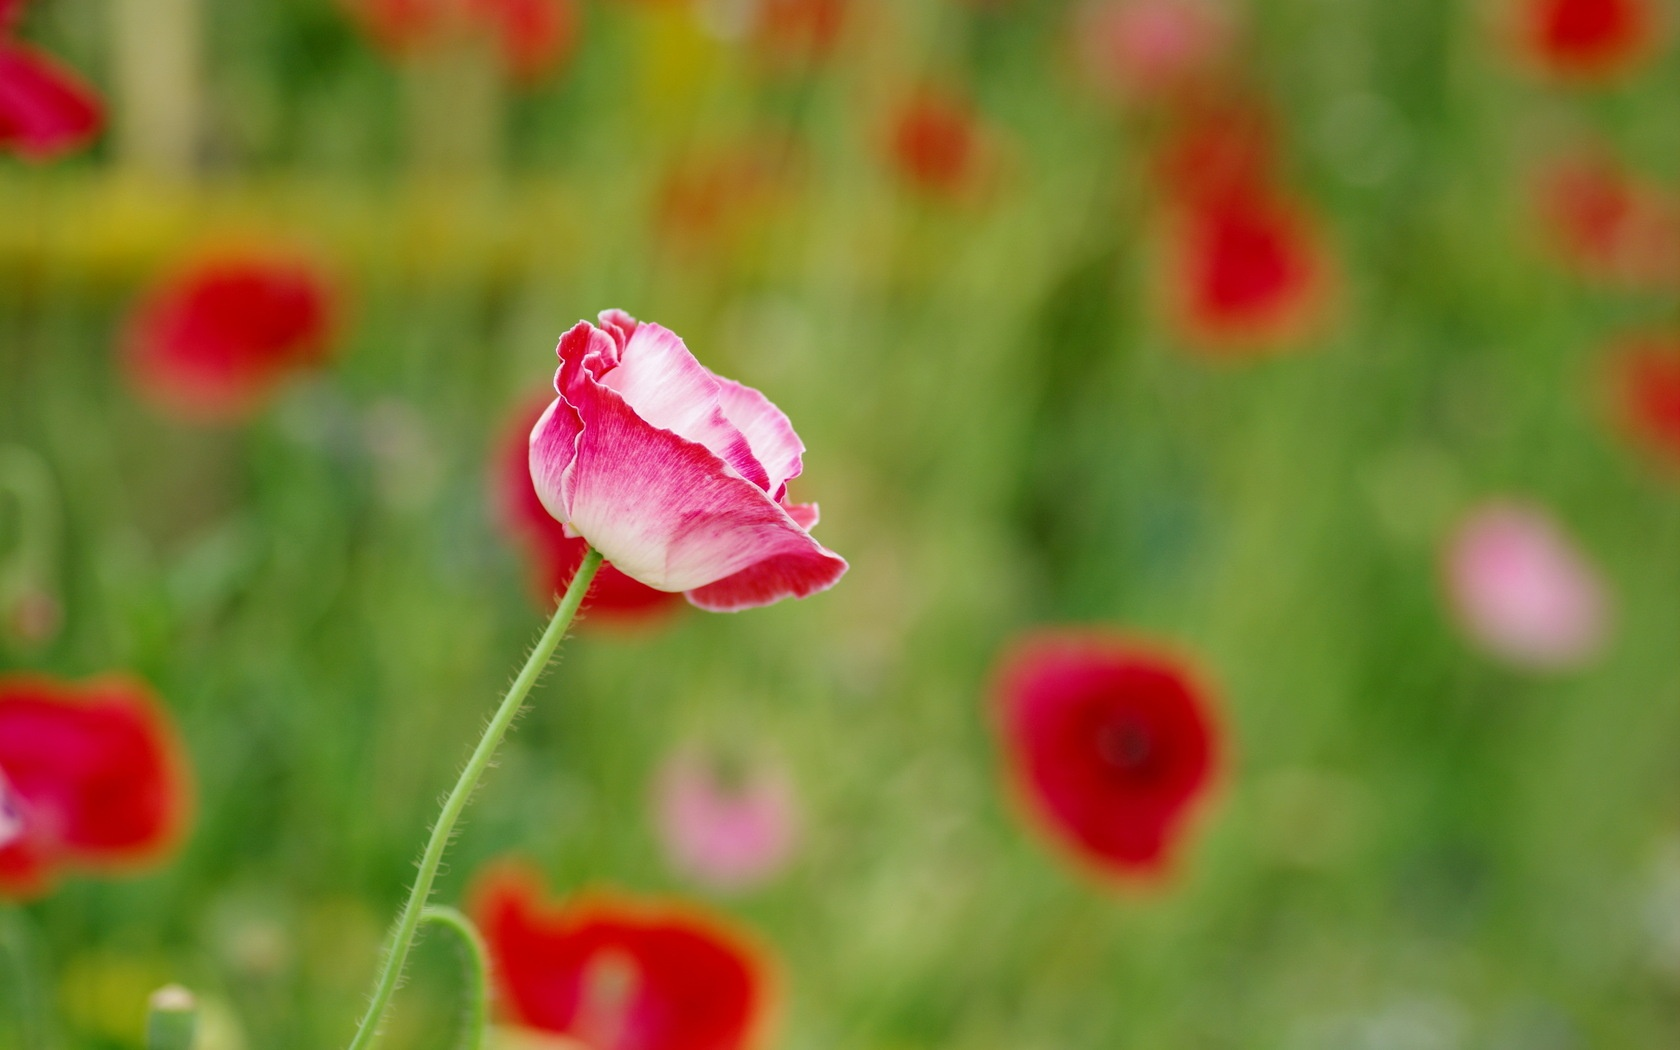 Pink Poppy Flower Wallpapers 1680x1050 278782